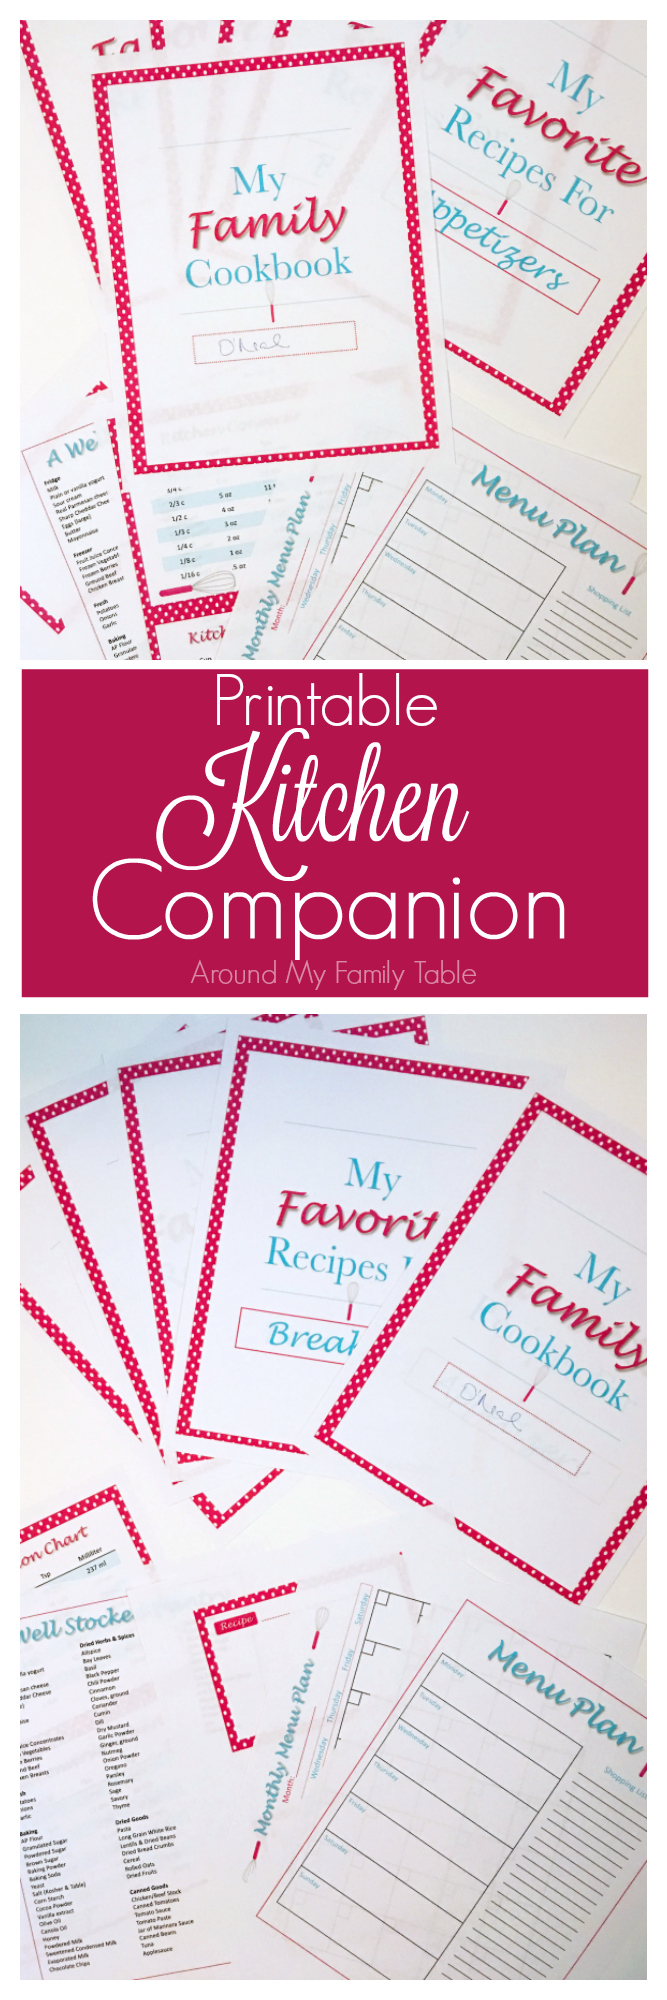 Printable kitchen companion includes 2 menu plans, recipe cards, kitchen binder inserts, and more.